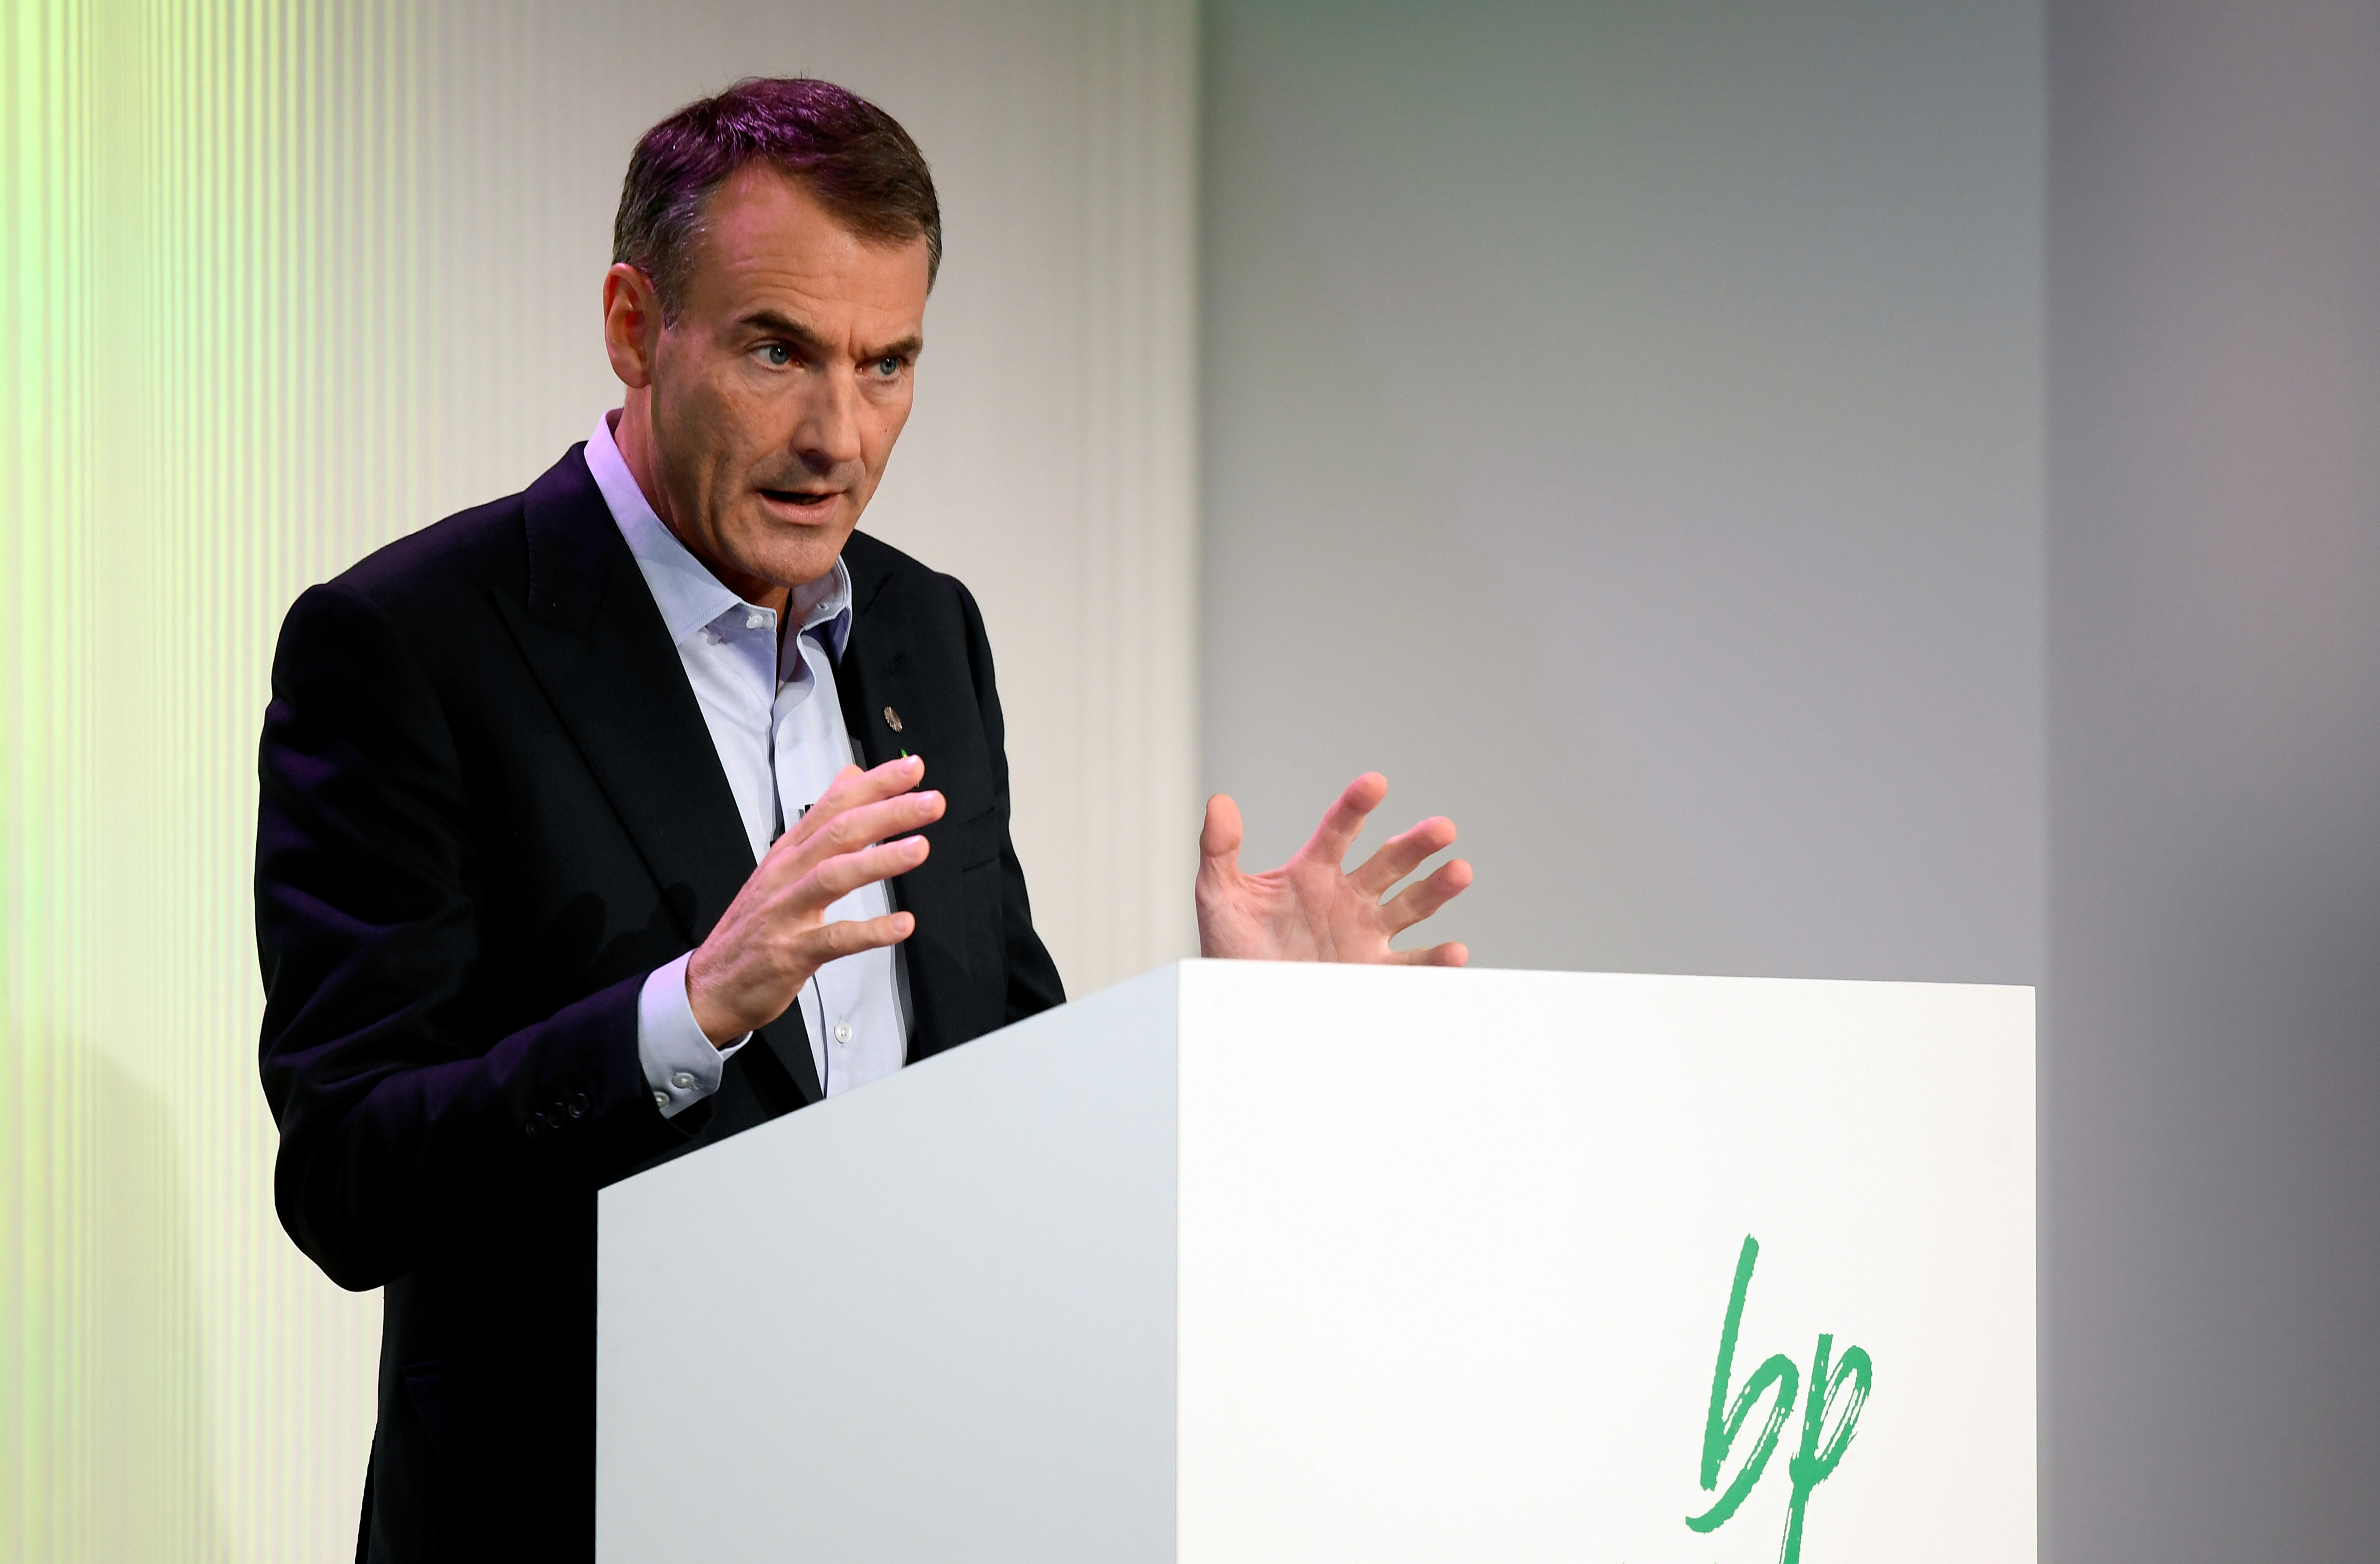 BP's  Chief Executive Bernard Looney gives a speech in central London, Britain February 12, 2020. REUTERS/Toby Melville